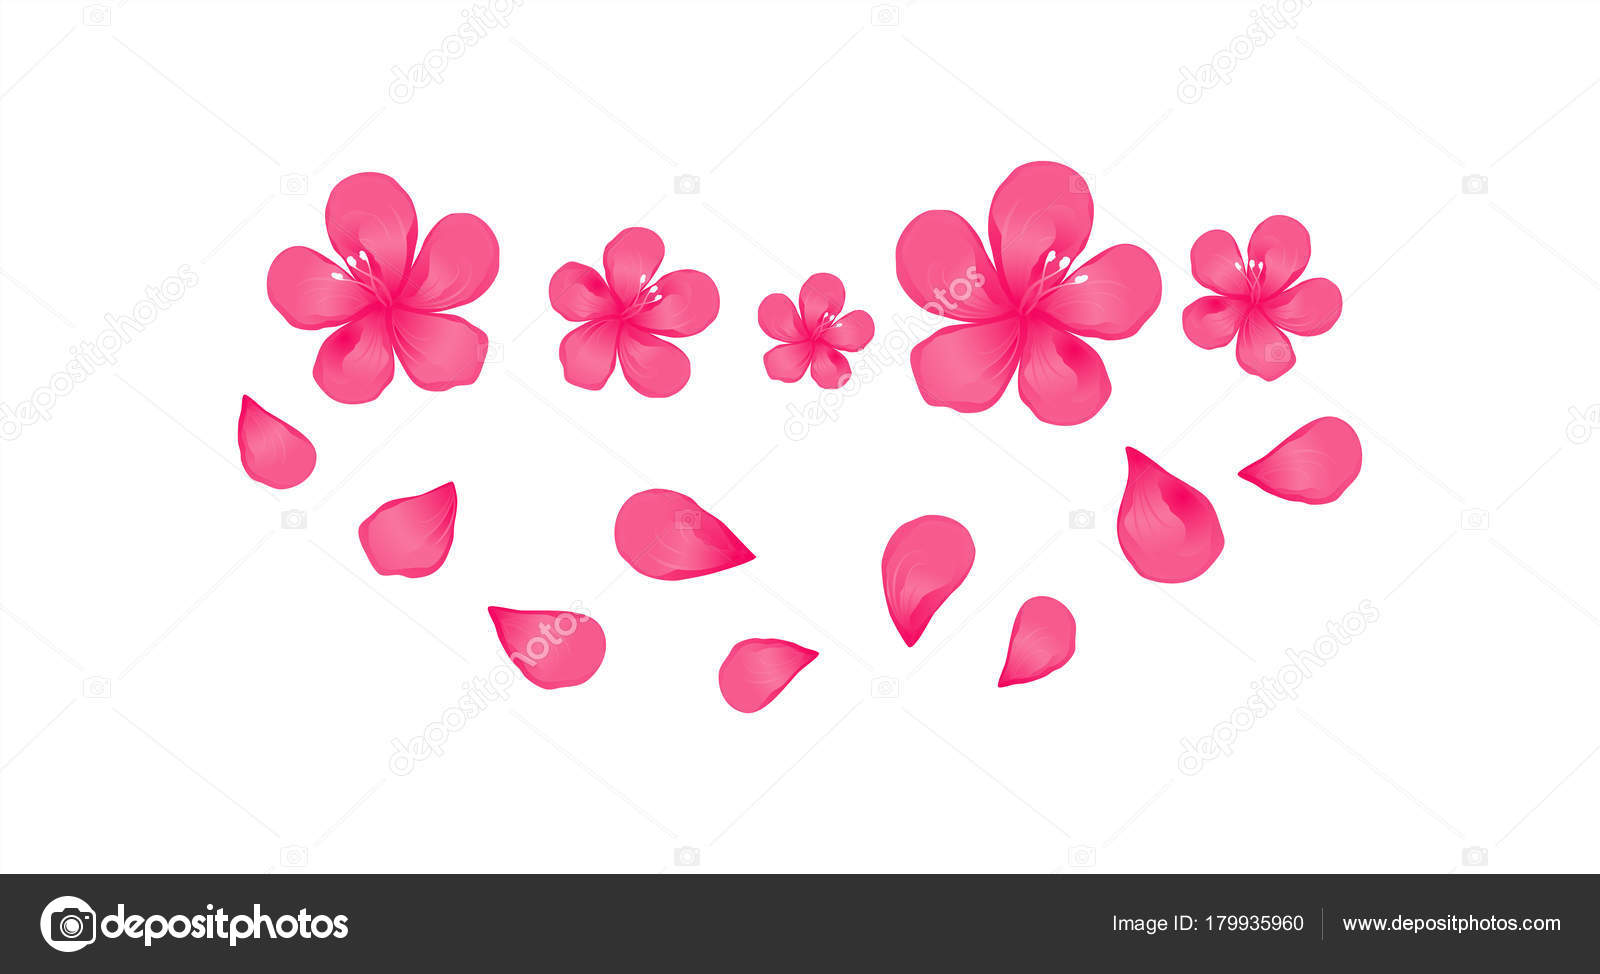 Bright pink flowers flying petals isolated white background apple bright pink flowers and flying petals isolated on white background apple tree flowers cherry blossom vector eps 10 cmyk vector by natashas mightylinksfo